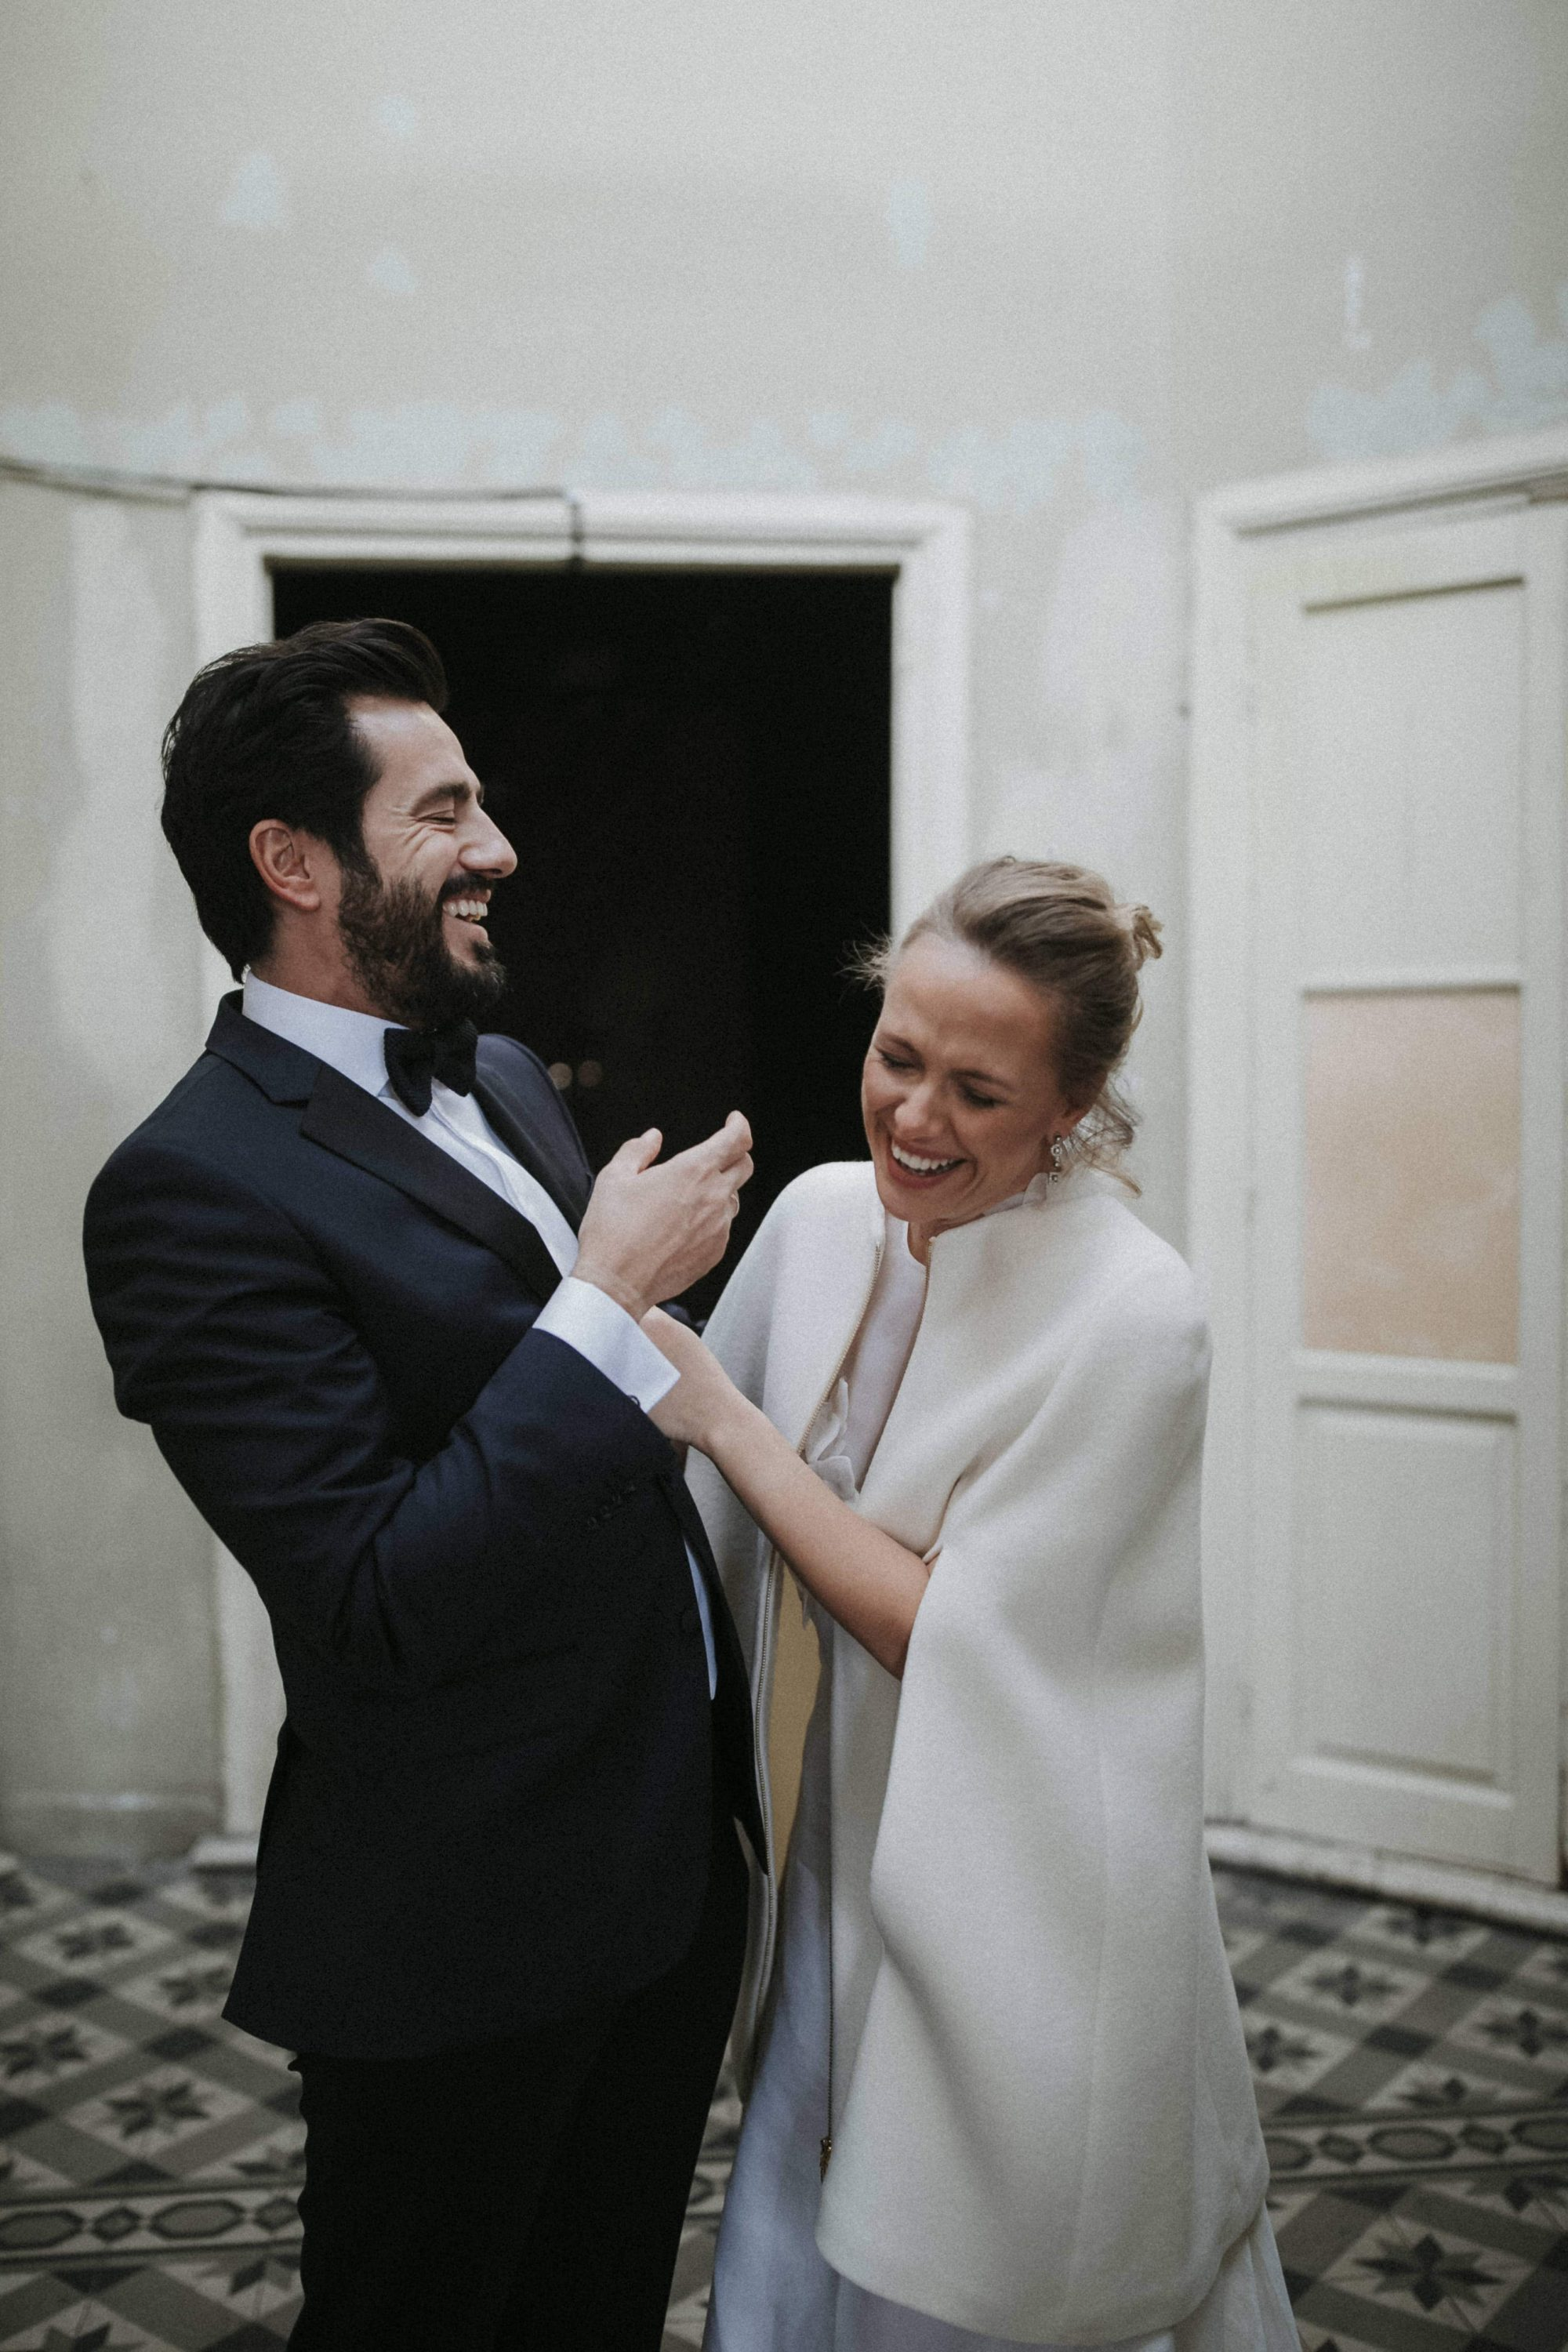 Idil & Emre Wedding In Thessaloniki Greece White On Black Studio Photography (4)